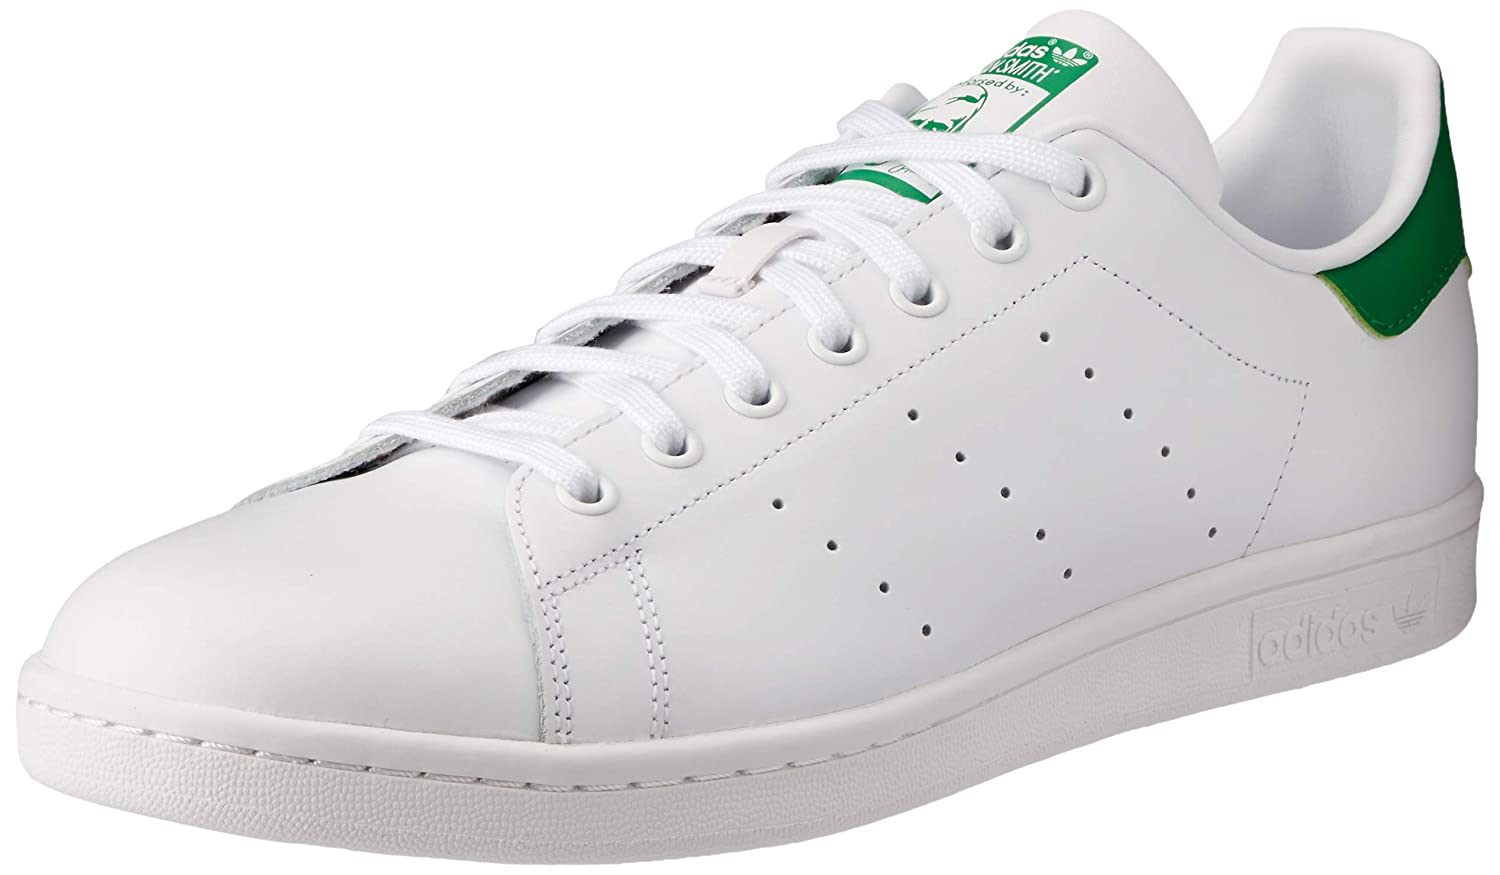 TALLA 36 EU. adidas Stan Smith, Zapatillas de Deporte Unisex Adulto